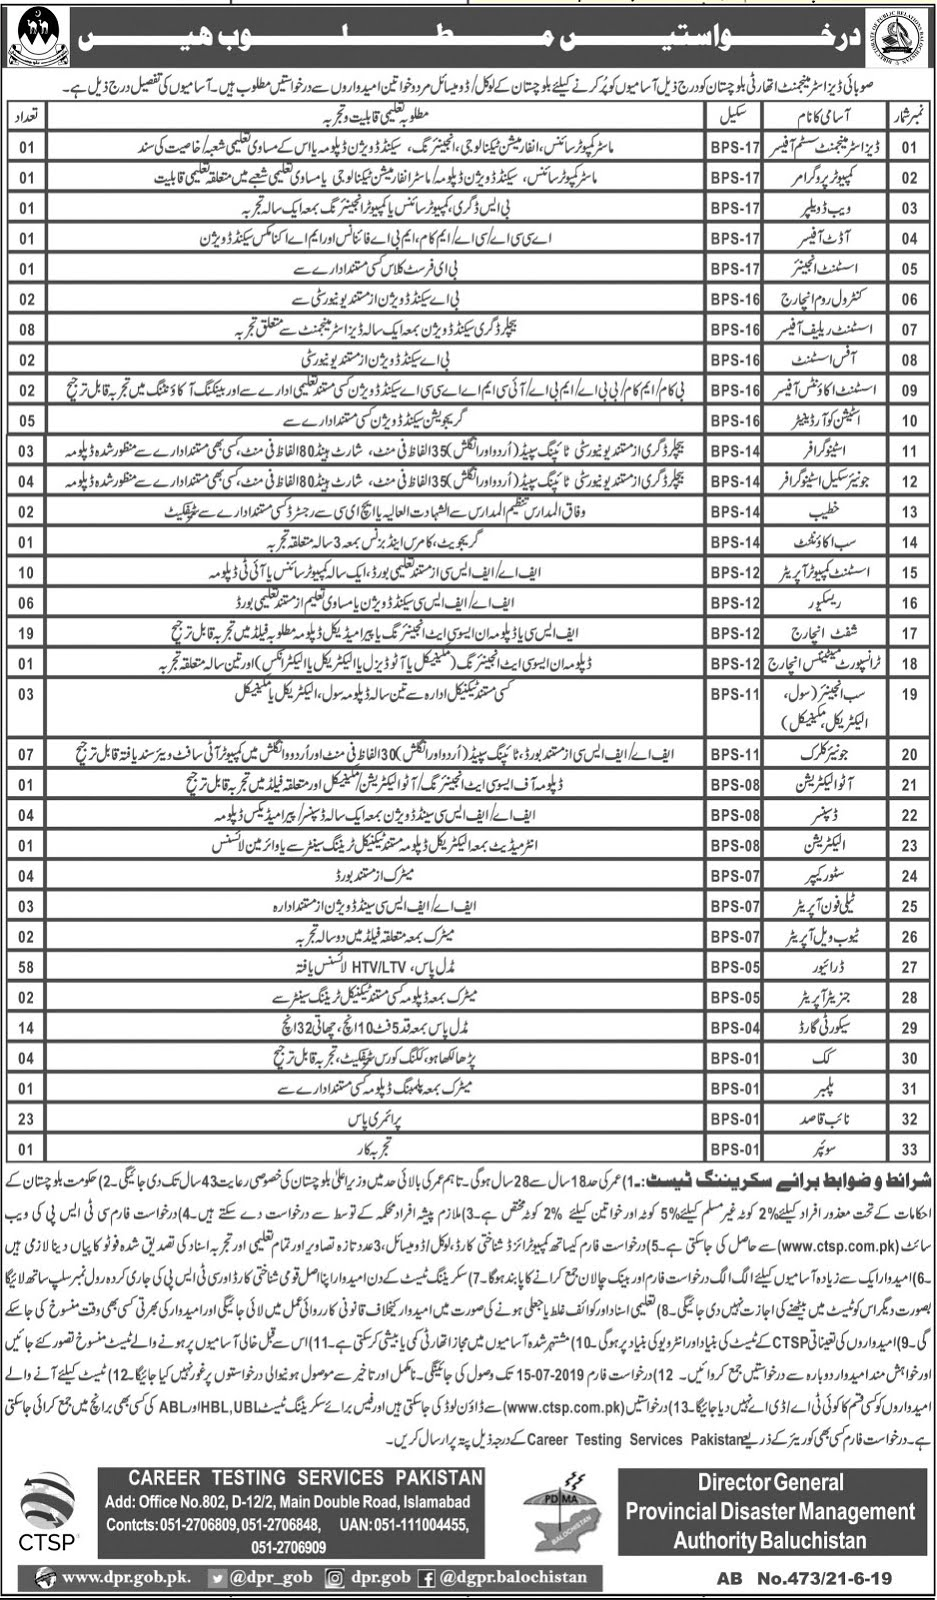 National Disaster Management Authority Jobs For Disaster System Management Officer, Computer Programmer and Others Jobs 2019 (298 Posts)